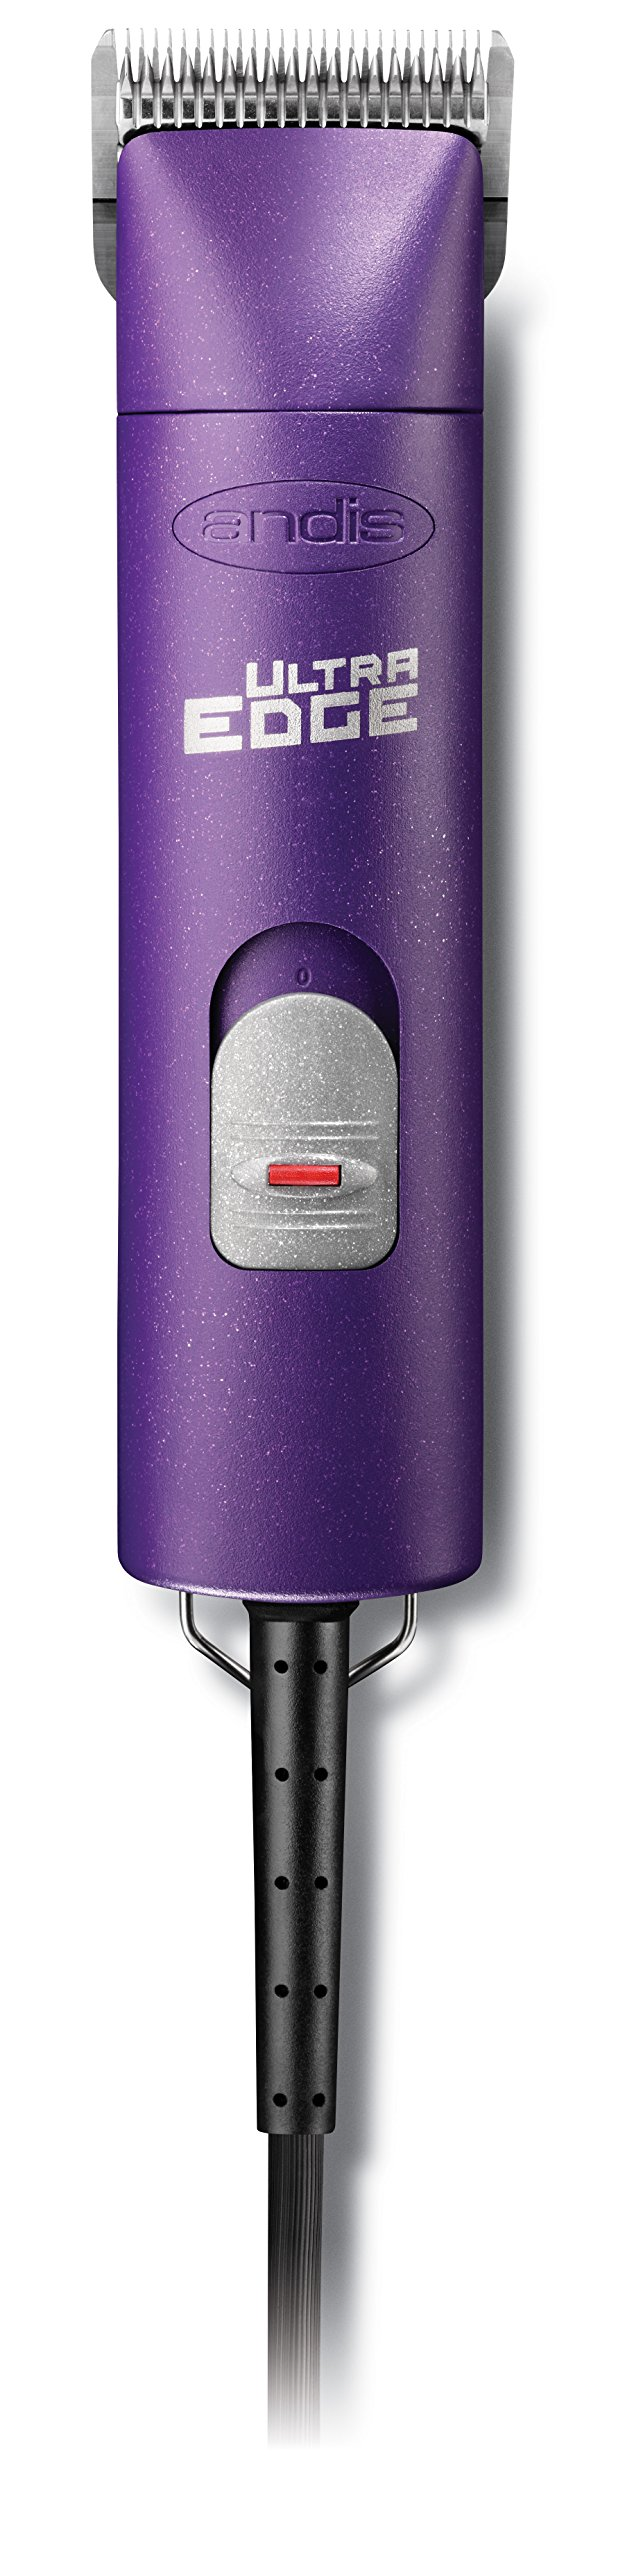 Andis UltraEdge AGC Super 2-Speed Detachable Blade Clipper, Professional Animal Grooming, Purple, AGC2 (24080)